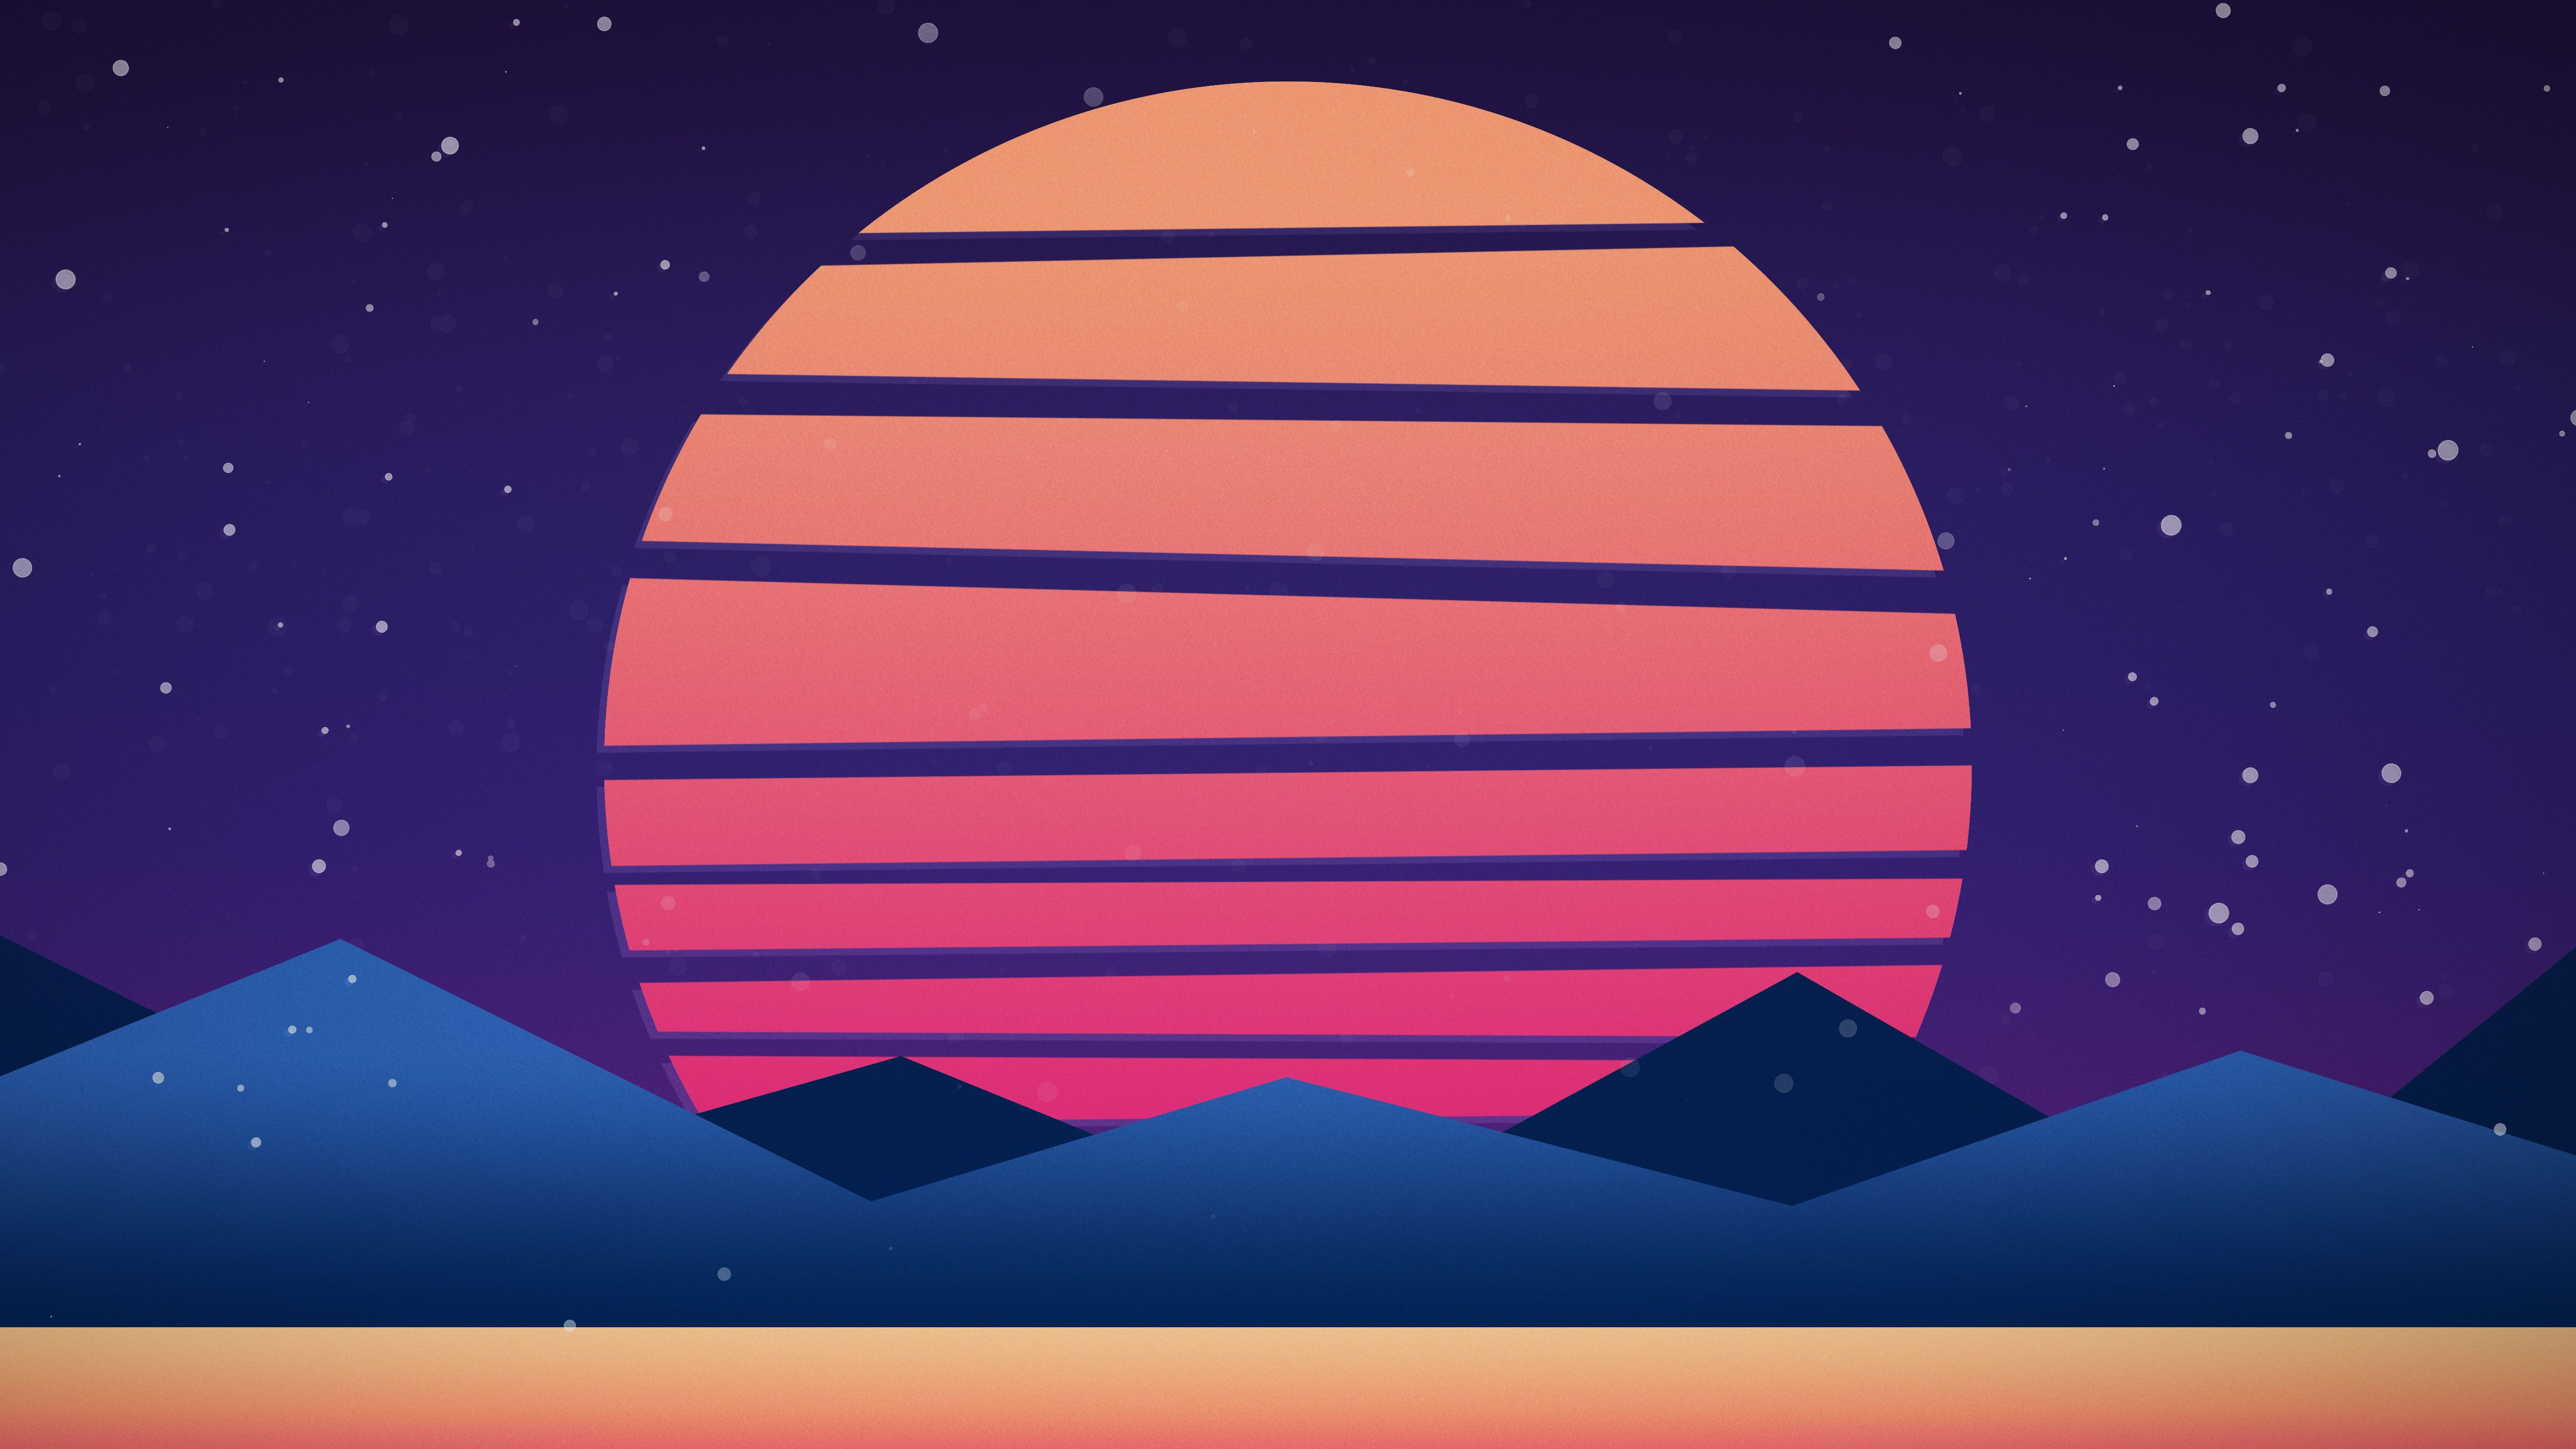 5k 5120x2880 Synthwave Inspired Sunset Abstract